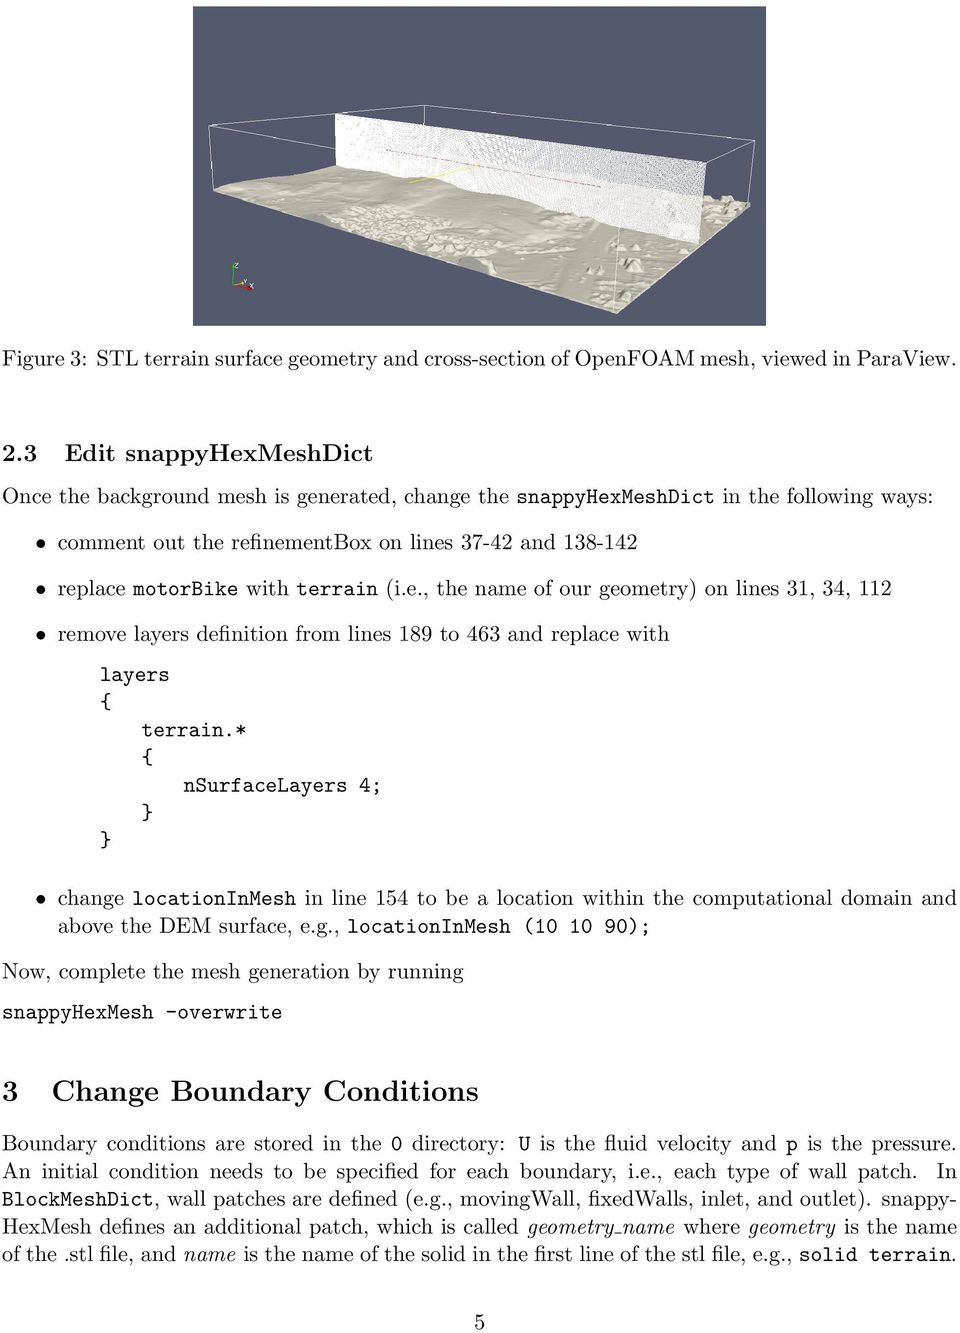 Simulating Wind Over Terrain: How to Build an OpenFOAM Case from